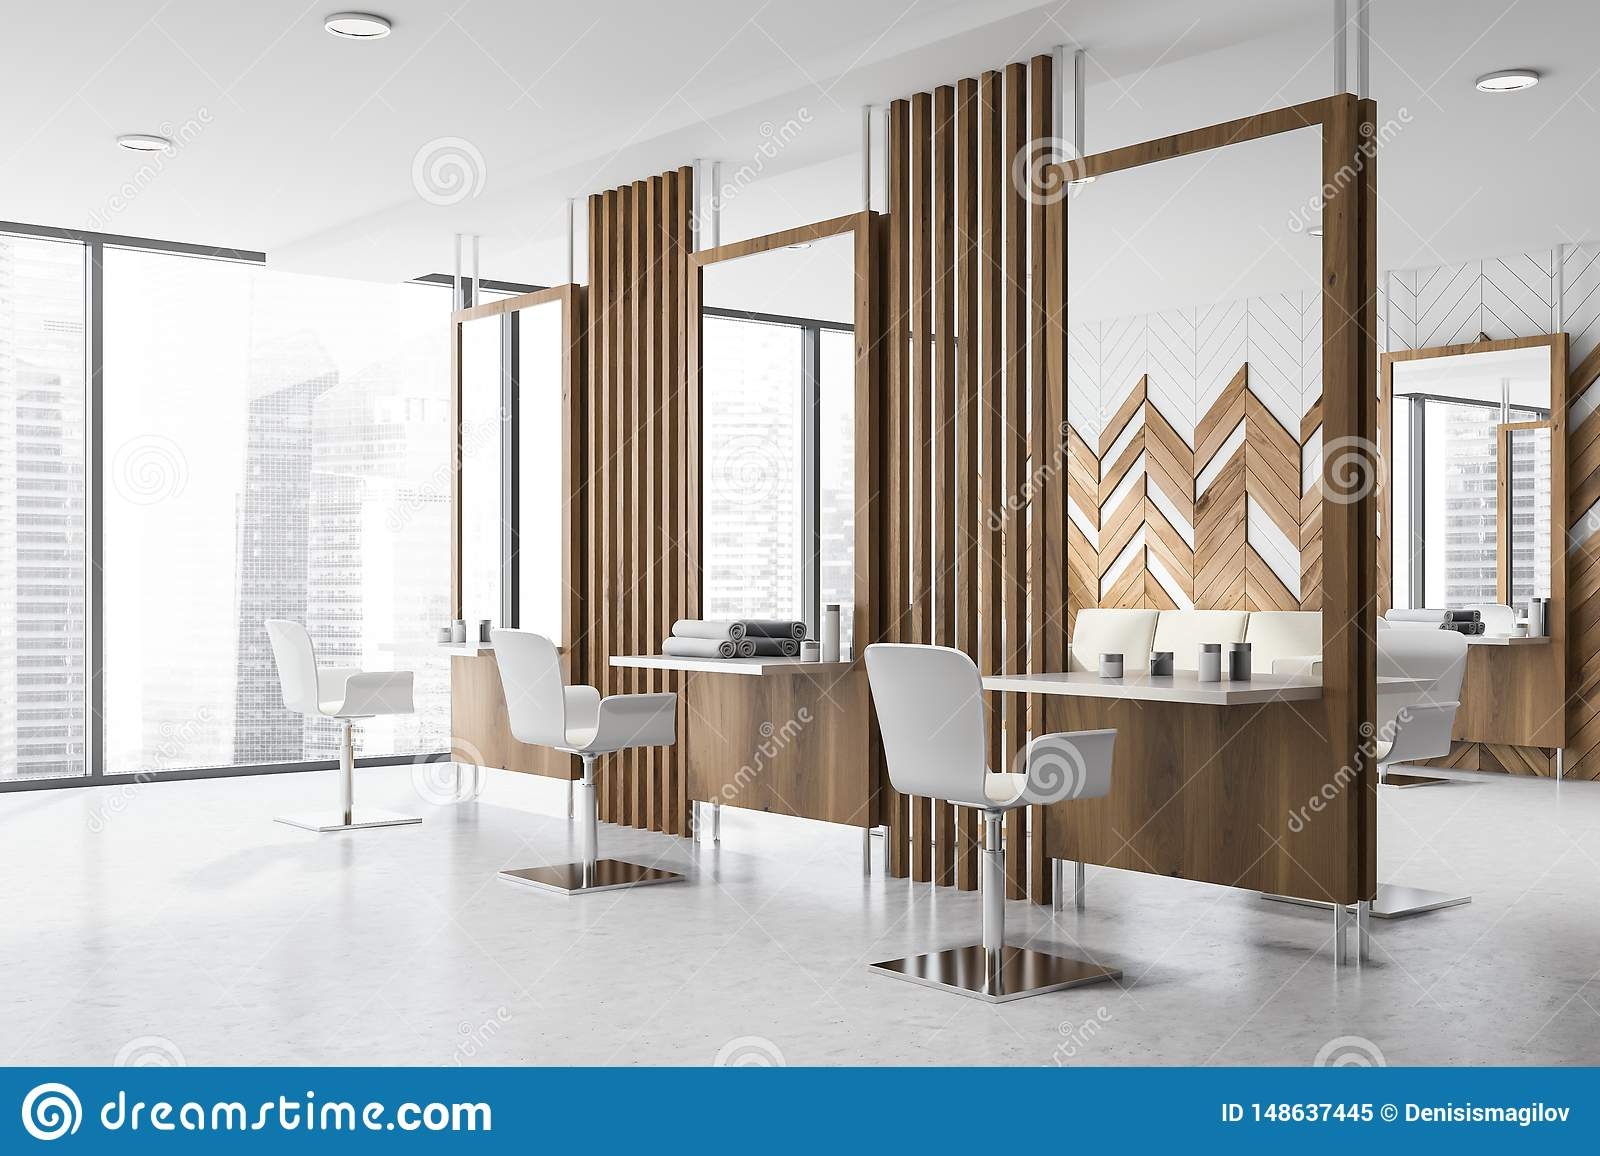 Panoramic Beauty Salon Interior Design Stock Illustration Illustration Of Barber Details 148637445